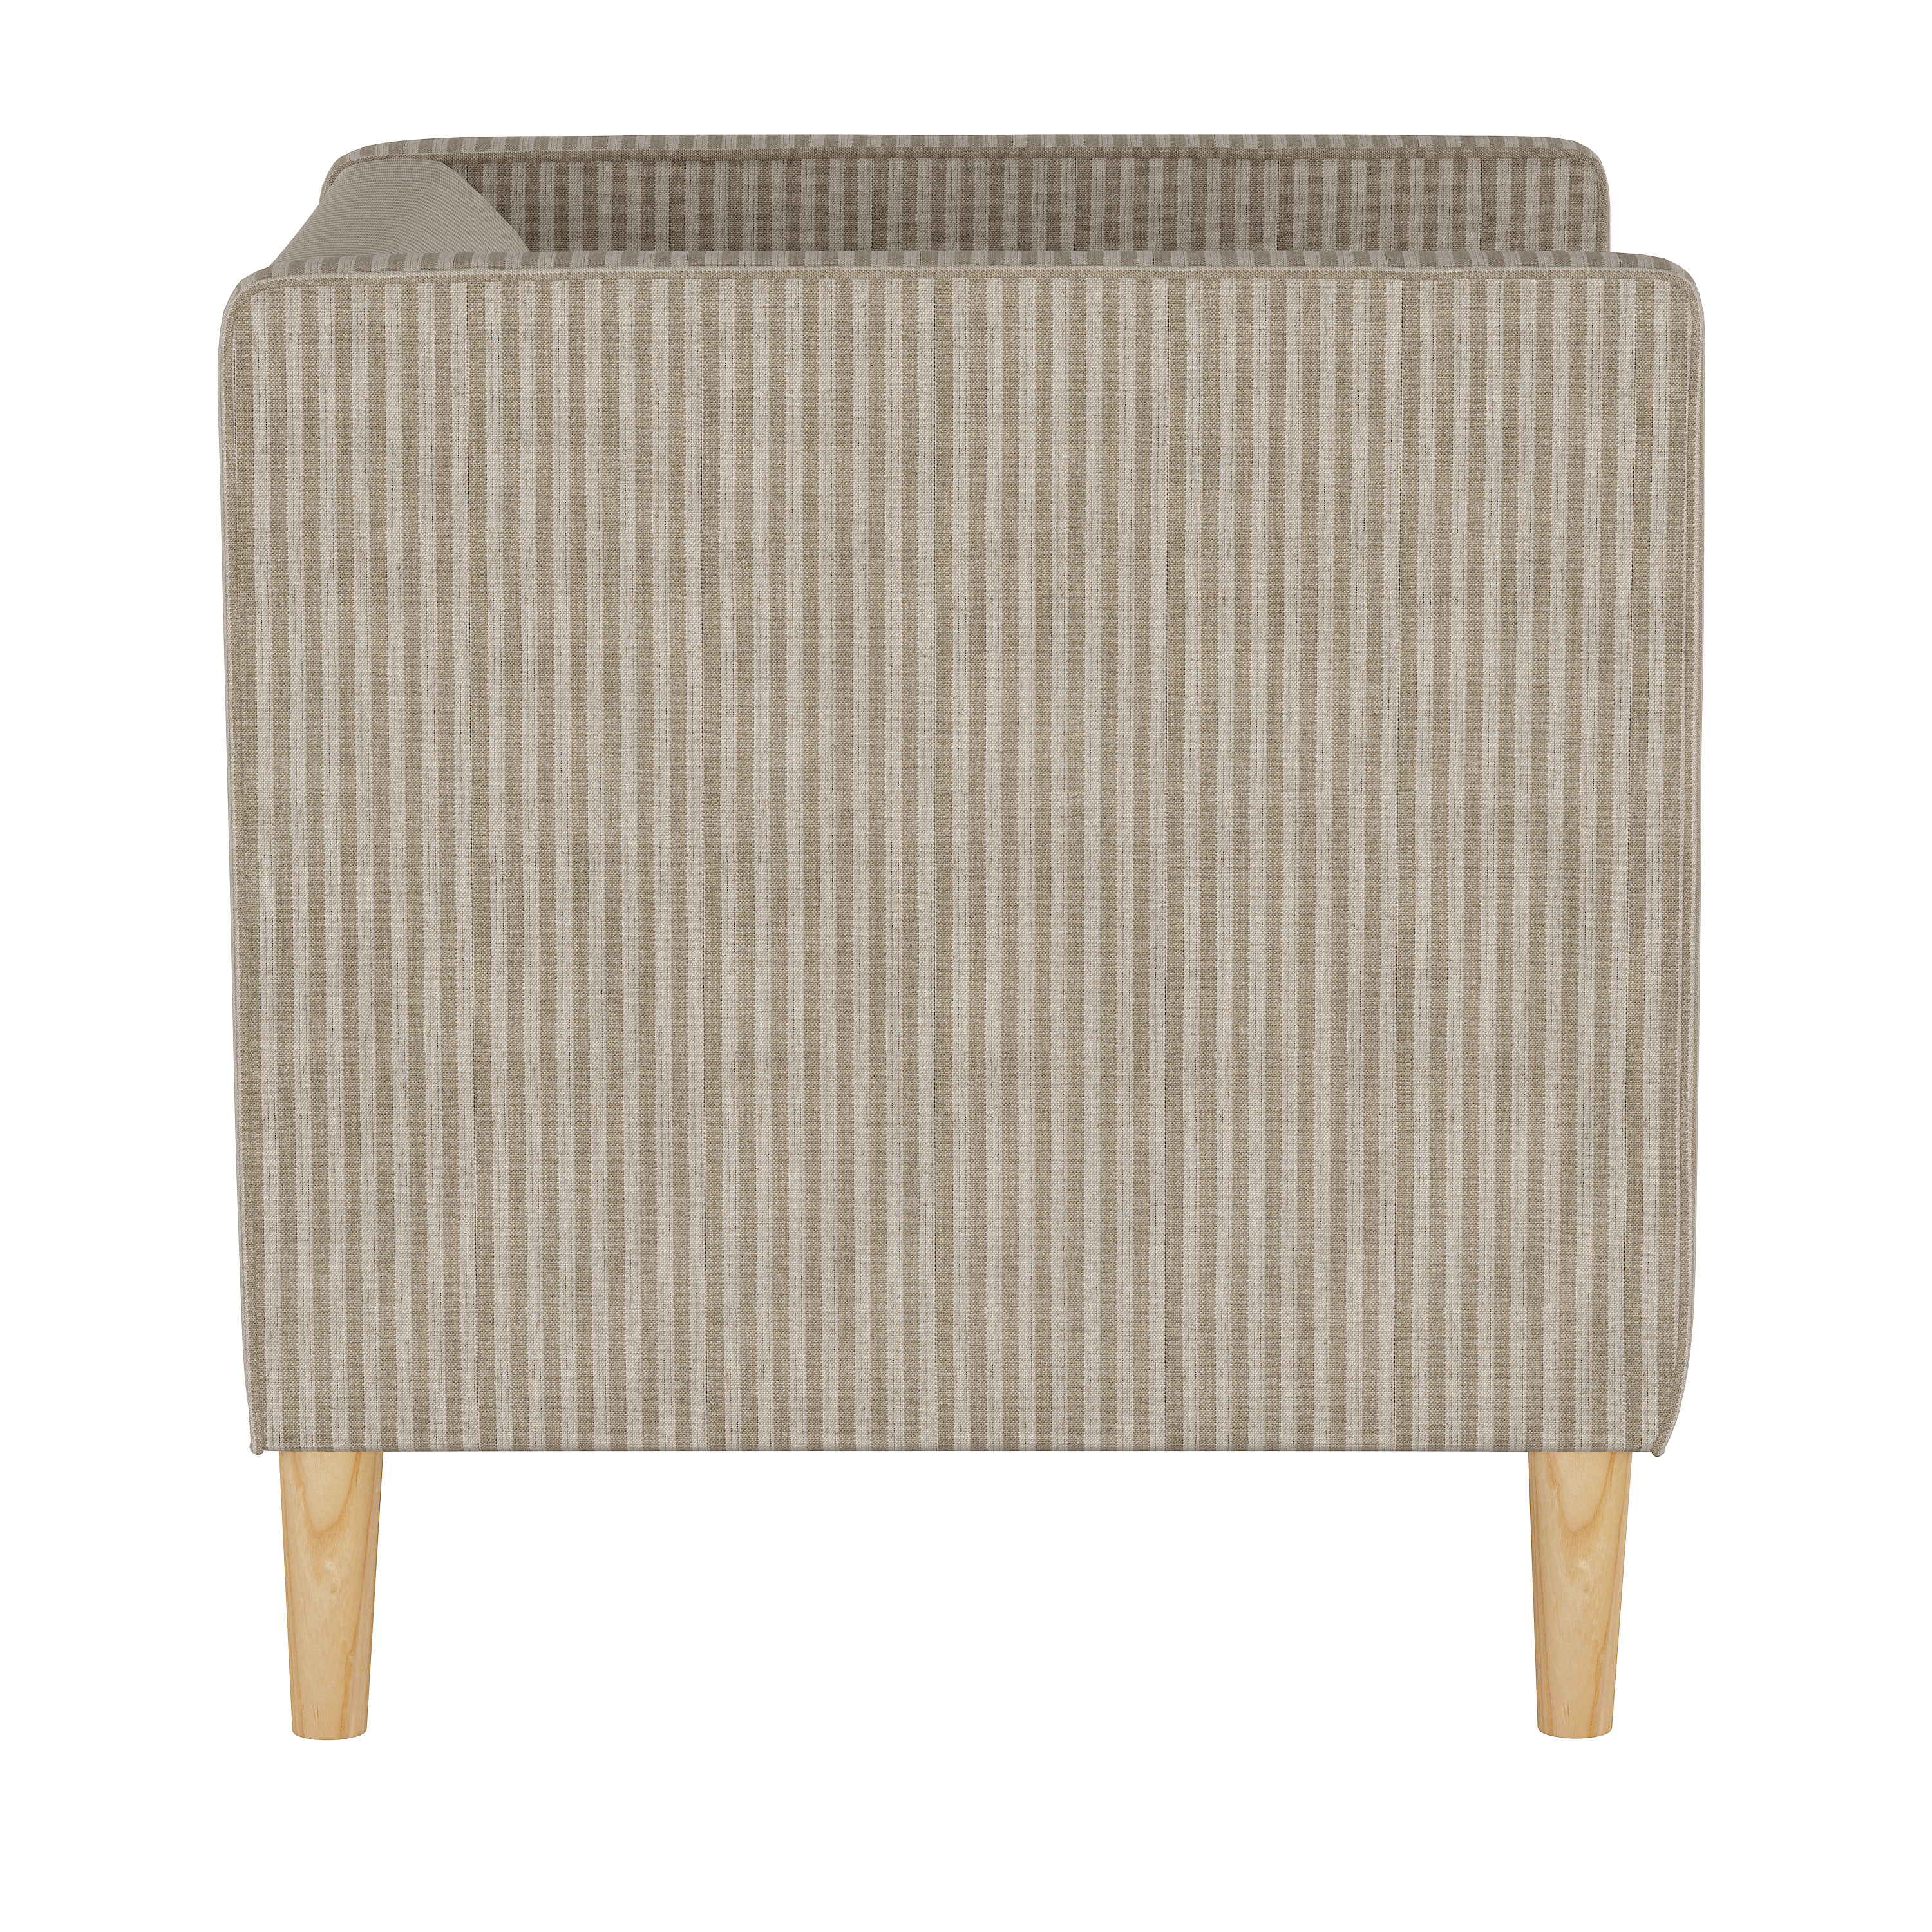 Humboldt Chair, Scout Stripe Taupe